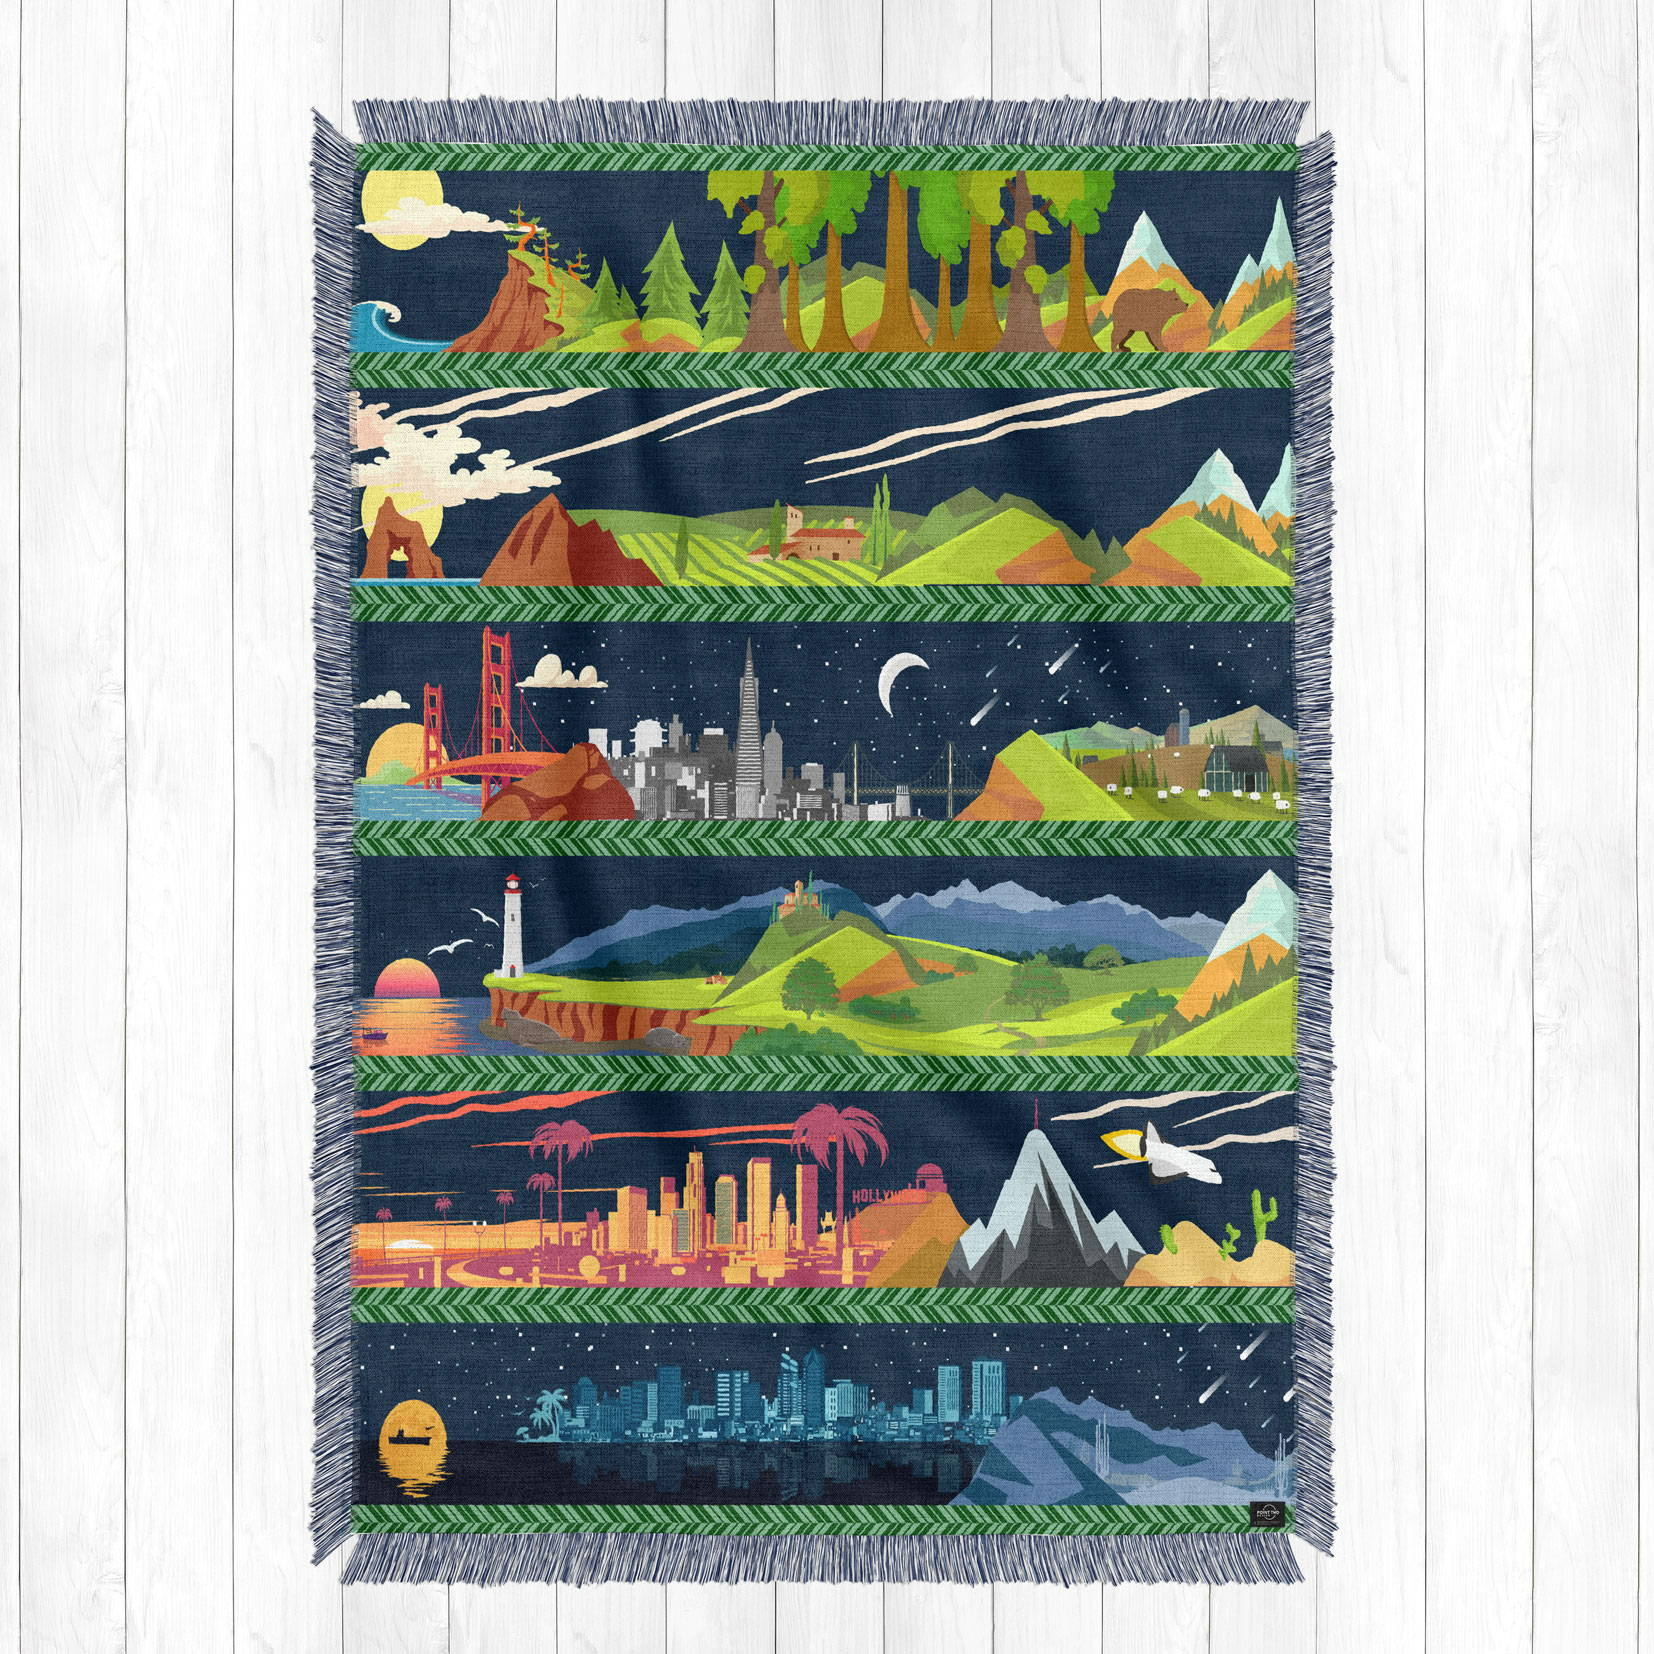 illustrated artwork of california state from north to south as a cotton woven blanket